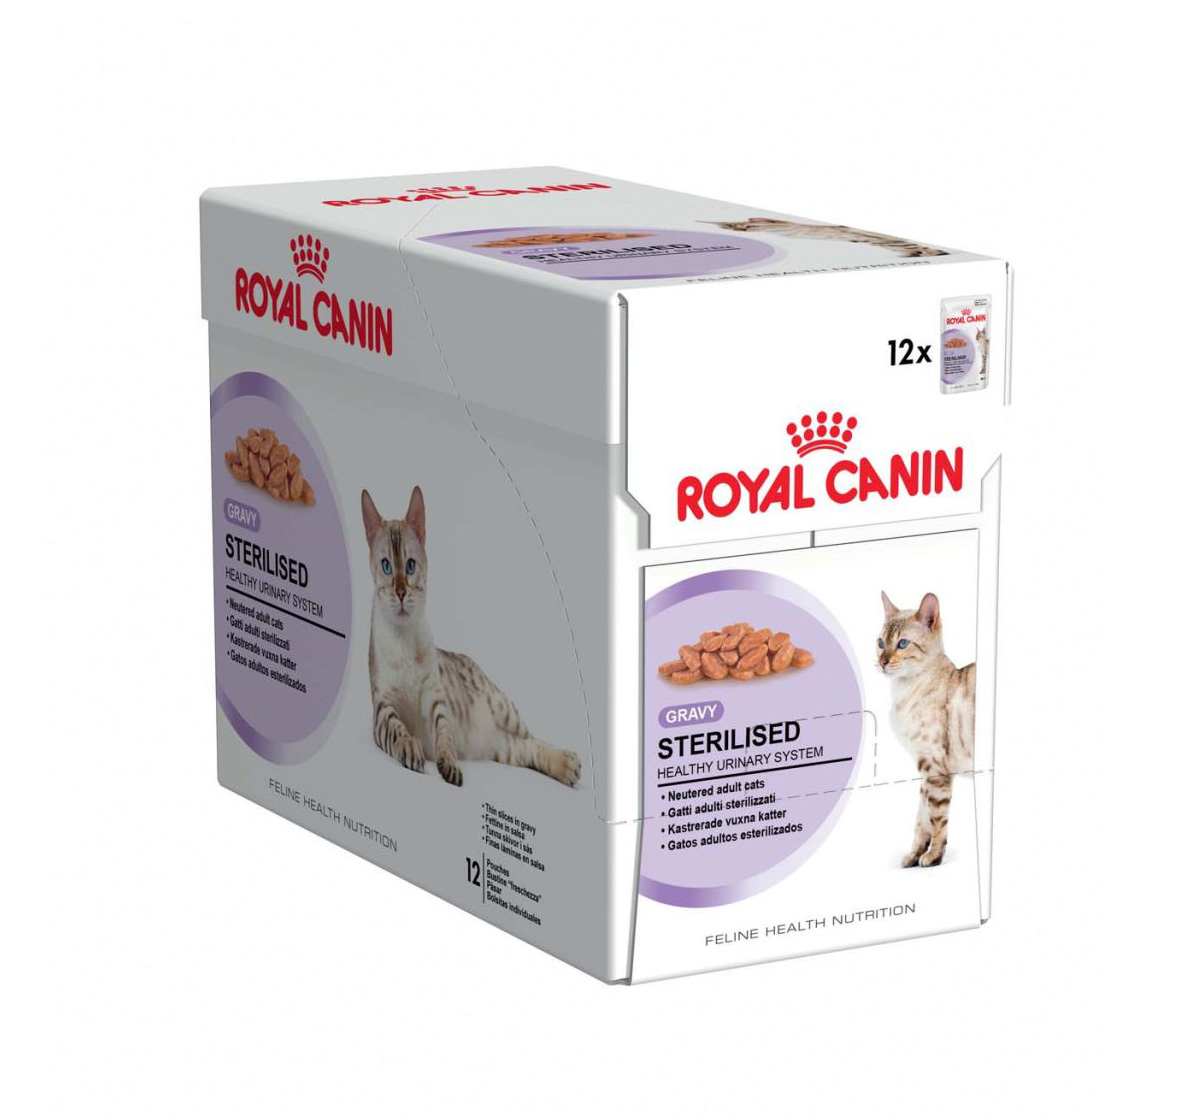 royal canin gravy sterilised cat food kg dogspot online pet supply store. Black Bedroom Furniture Sets. Home Design Ideas